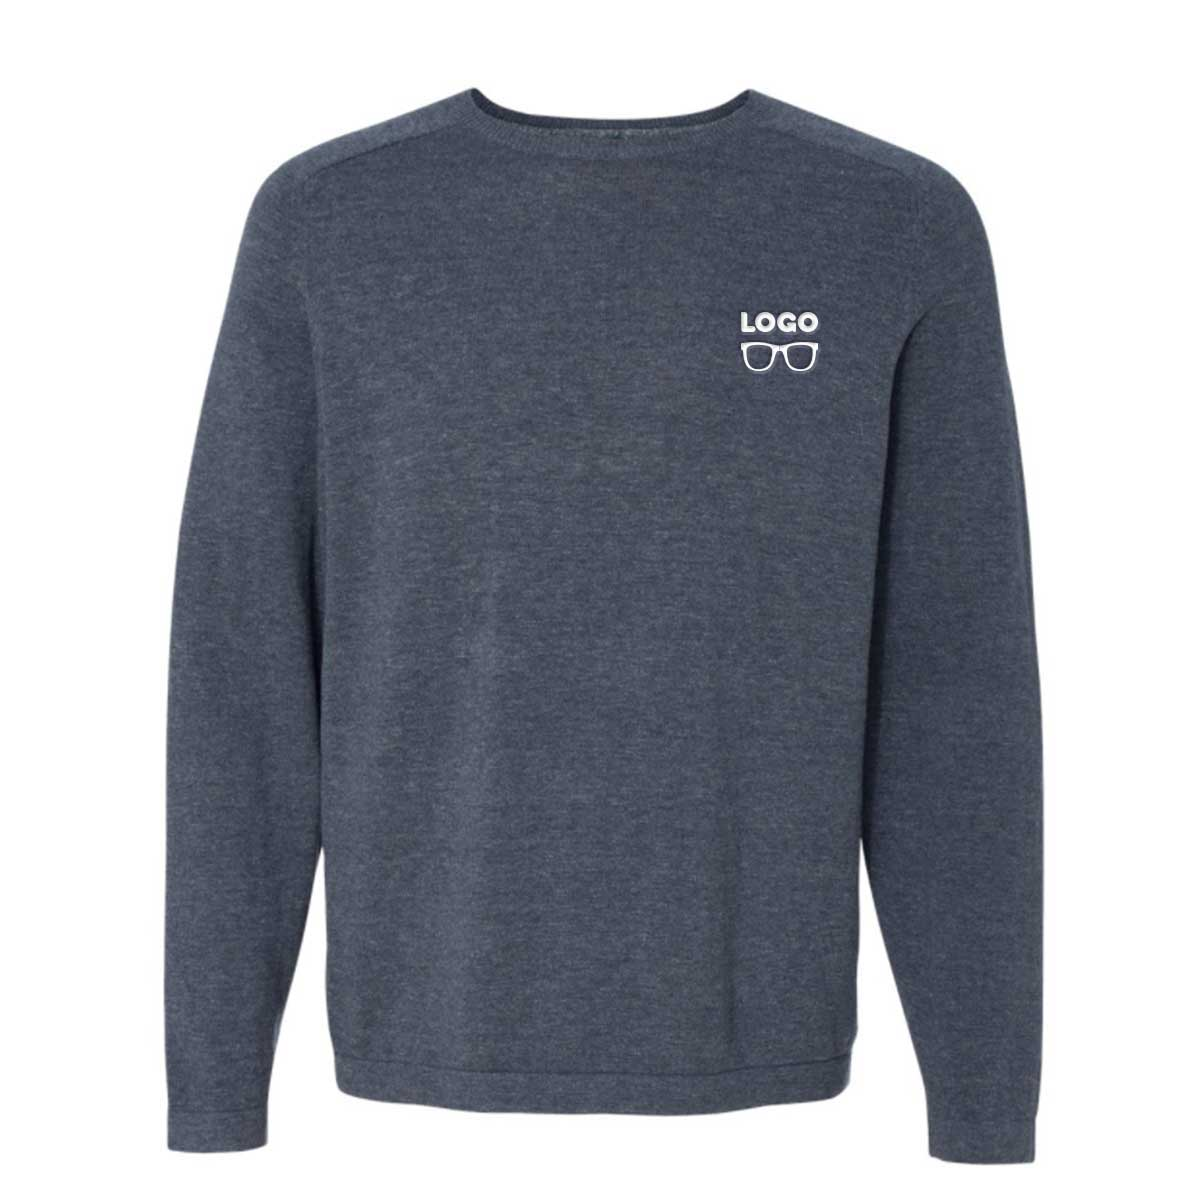 Brilliant crewneckcottonsweater denim